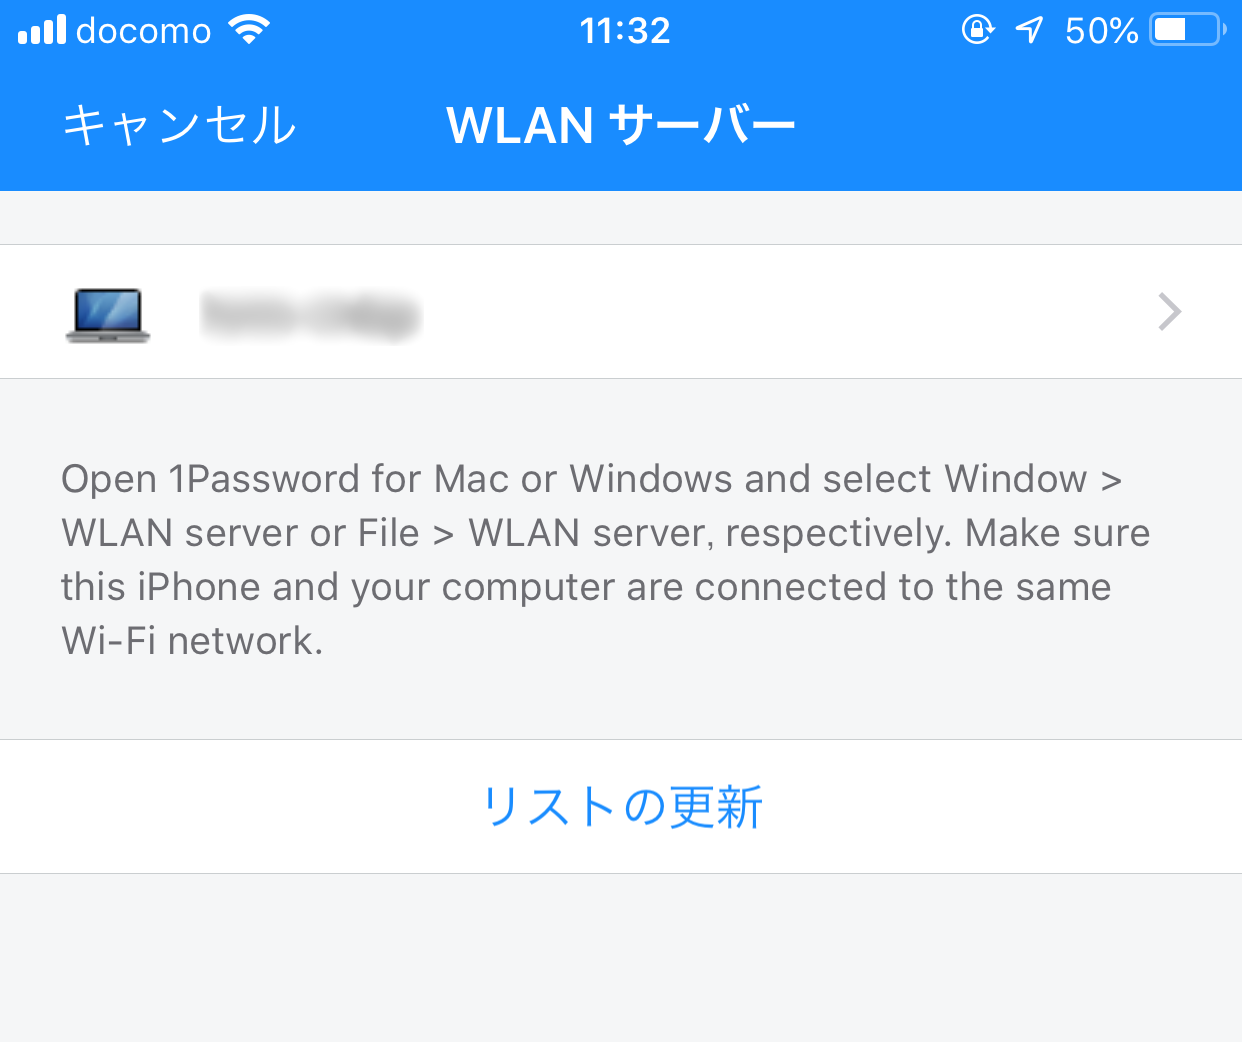 1Password WLAN Sync